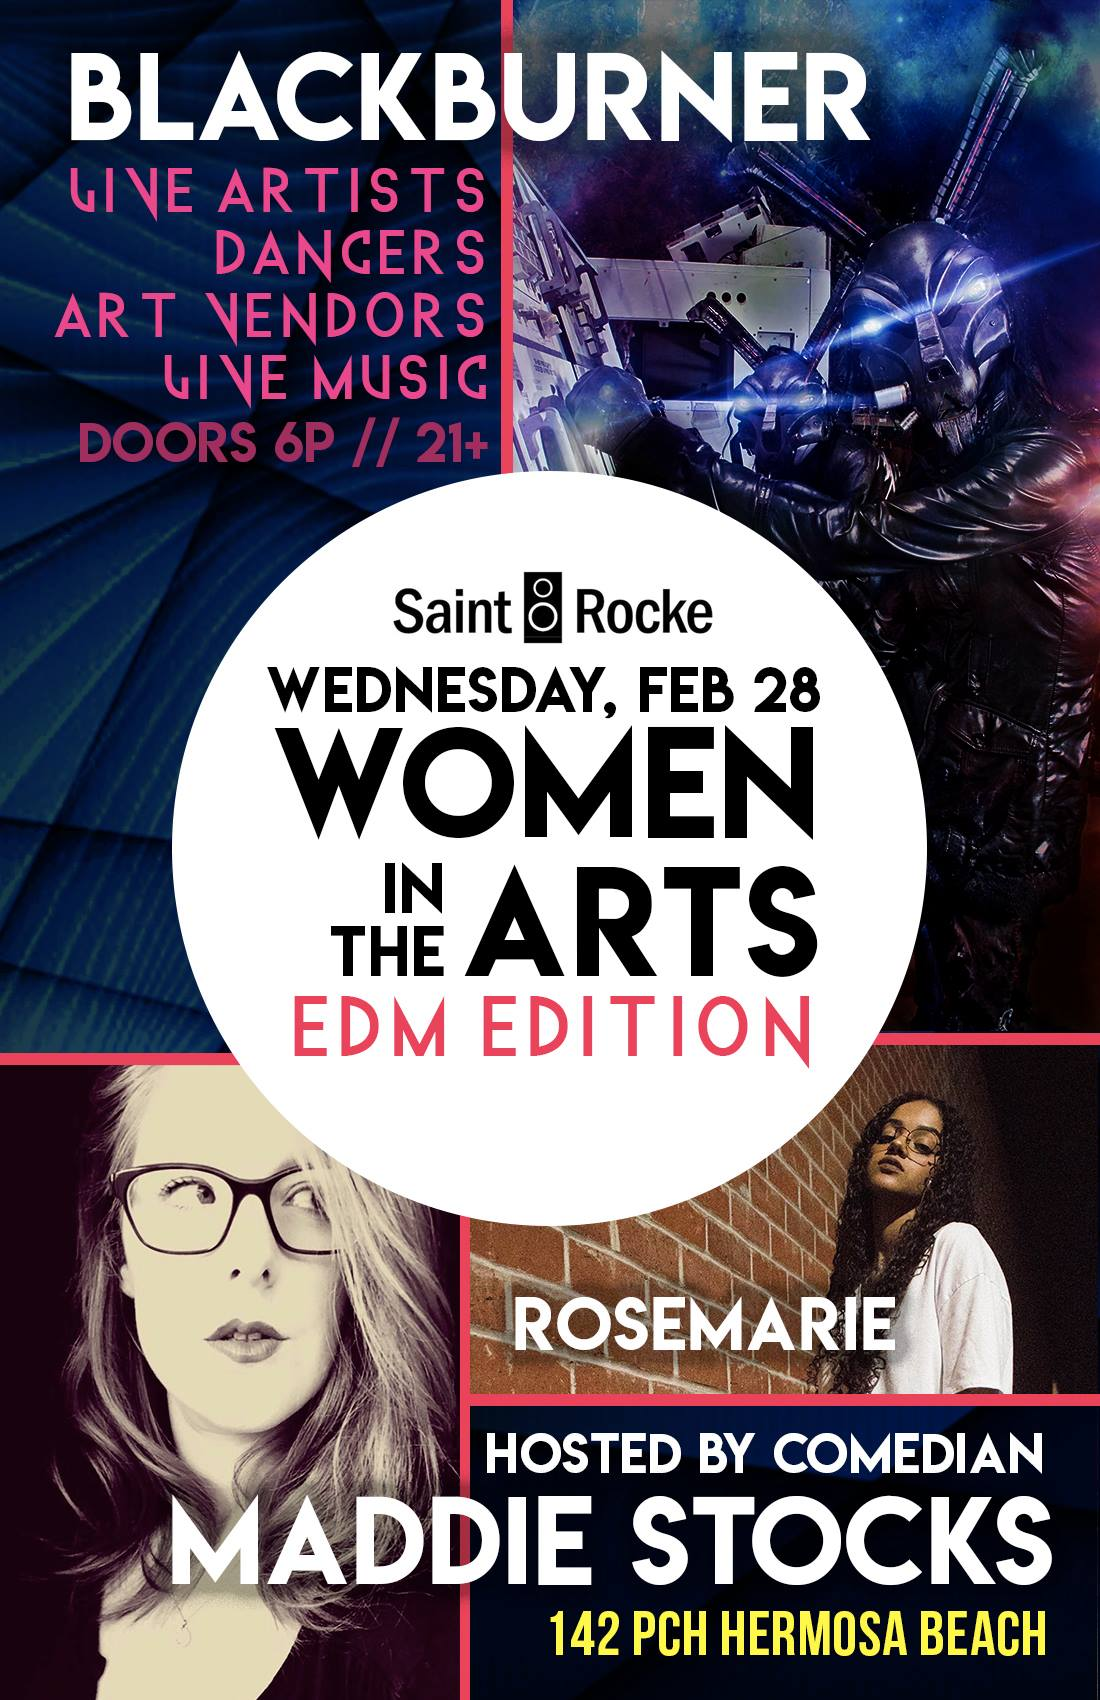 Women In the Arts feat. Blackburner at Saint Rocke